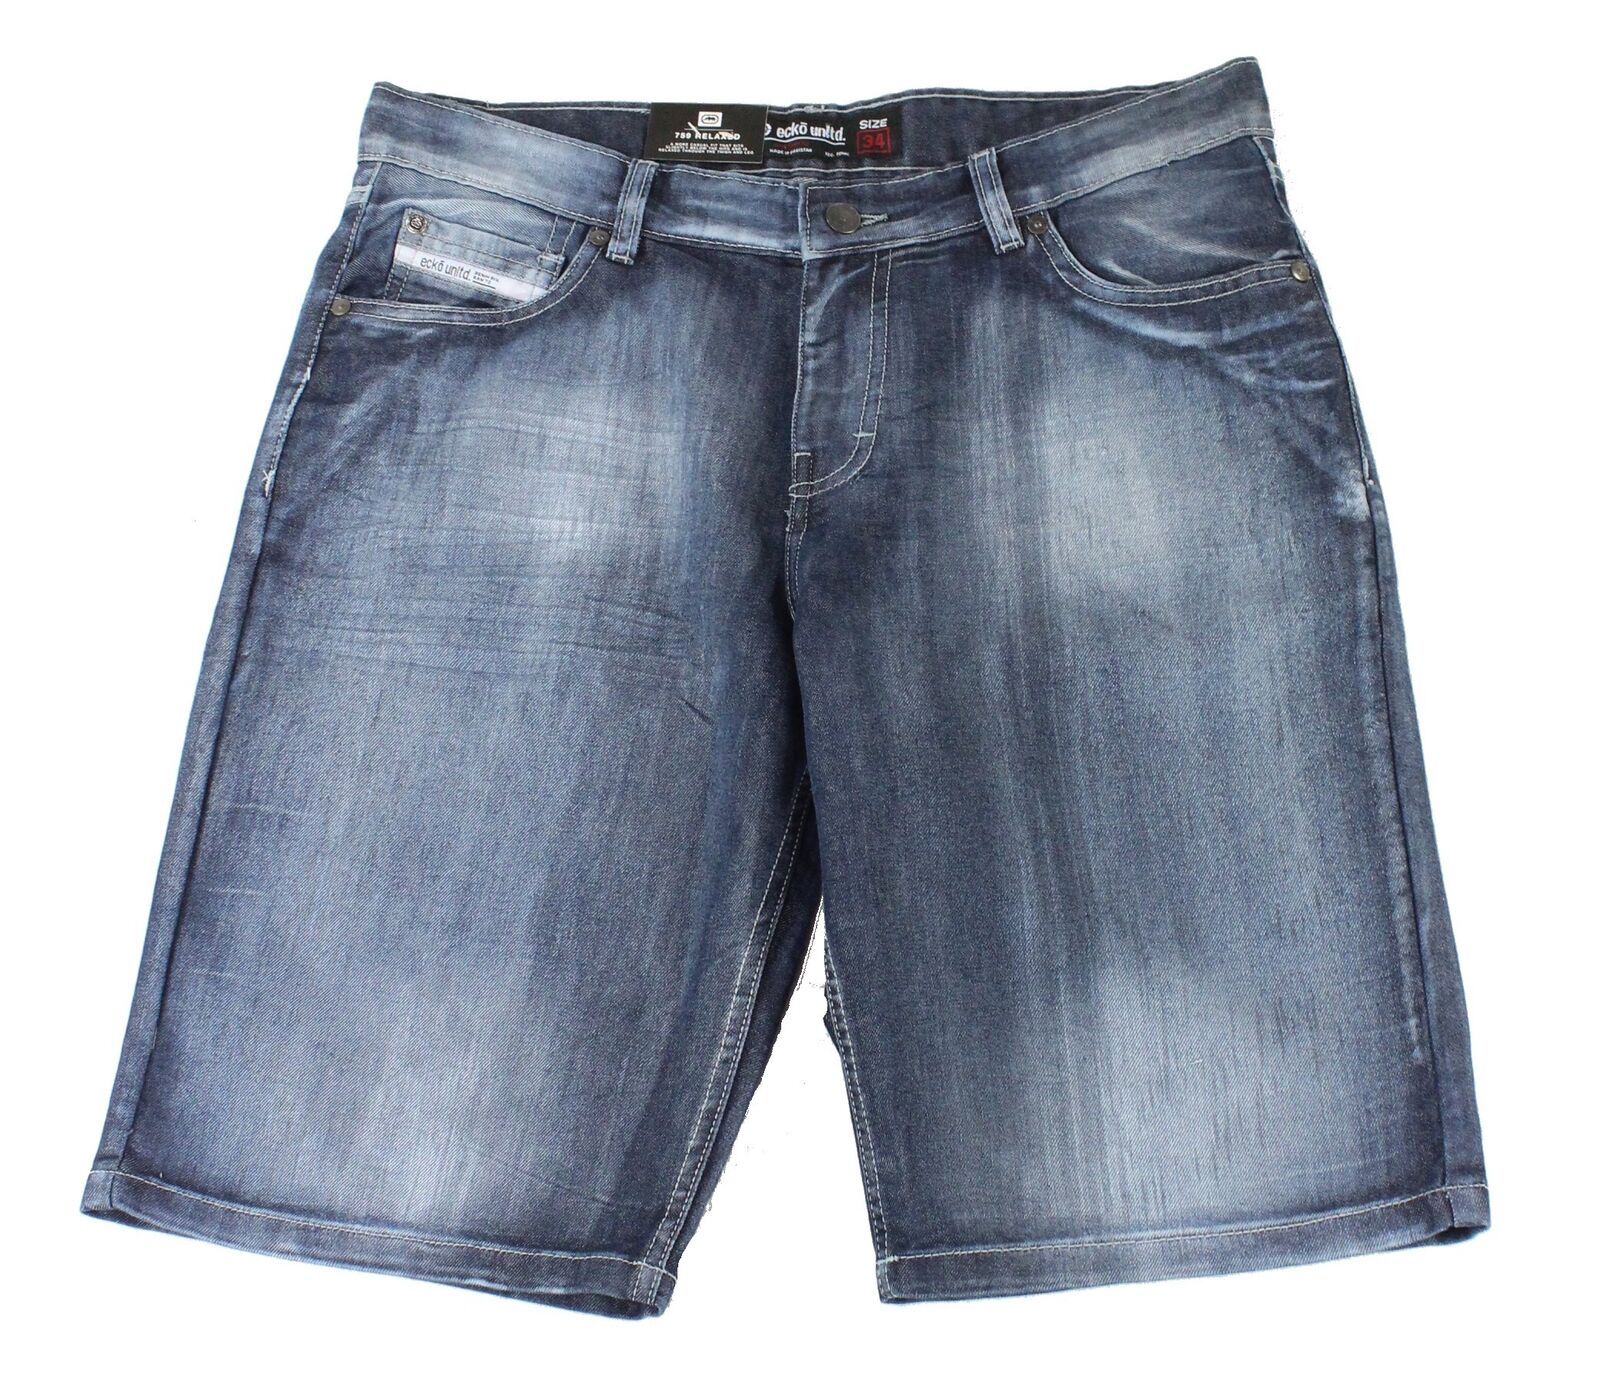 New-Ecko-Unltd-Mens-Shorts-Blue-Size-38-Denim-759-Relaxed-Fit-Washed-48-193